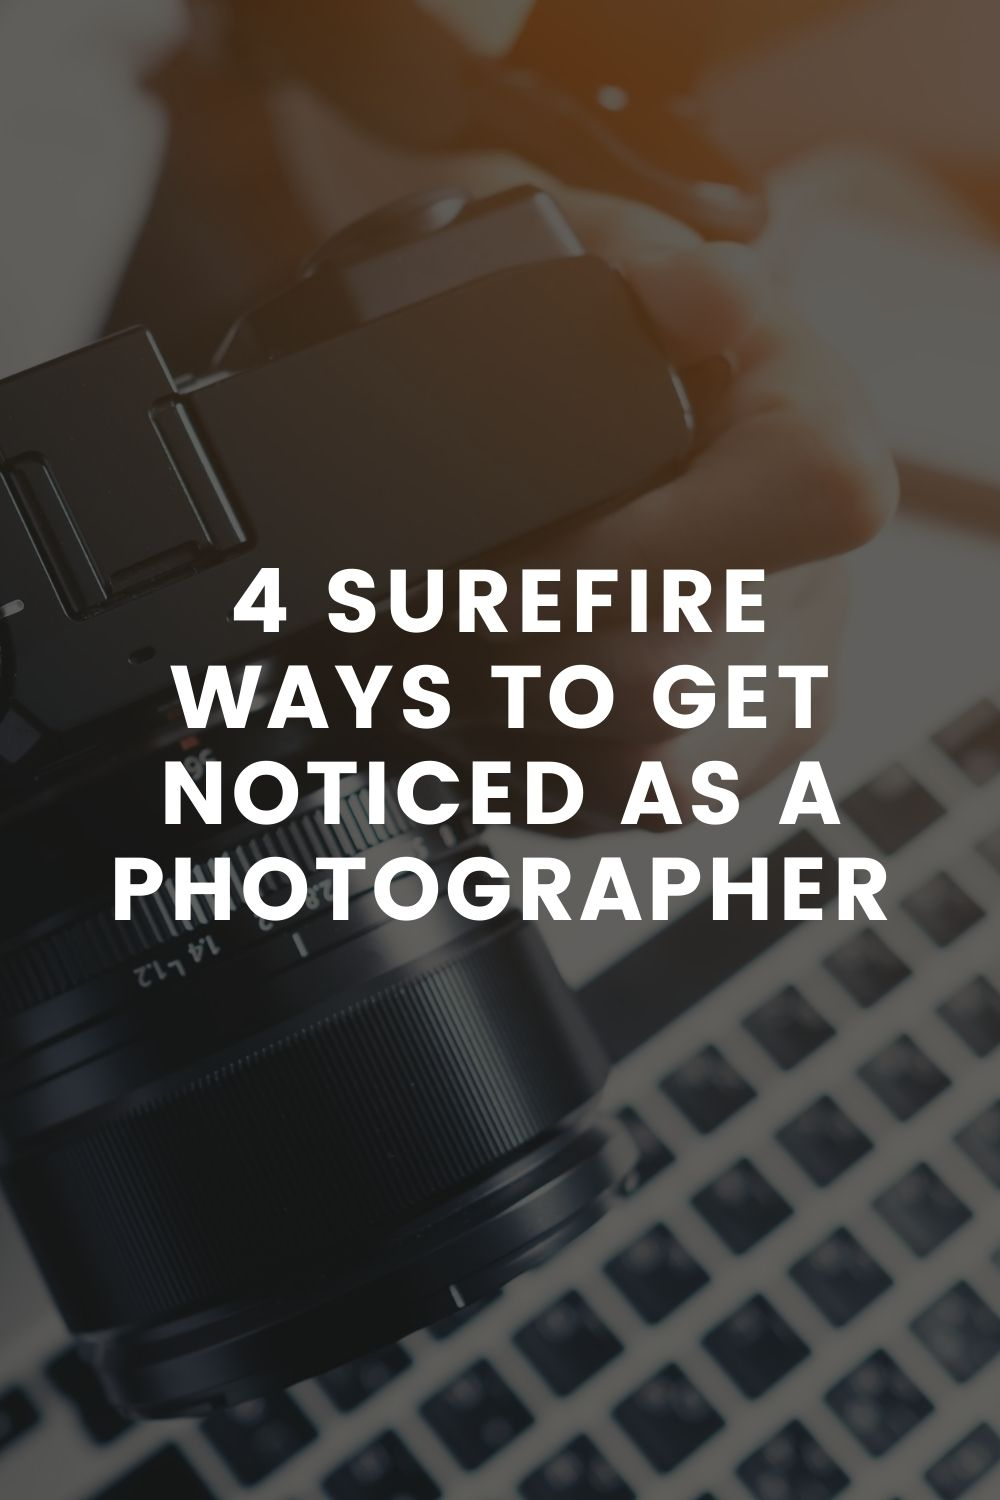 4 Surefire Ways to Get Noticed as a Photographer